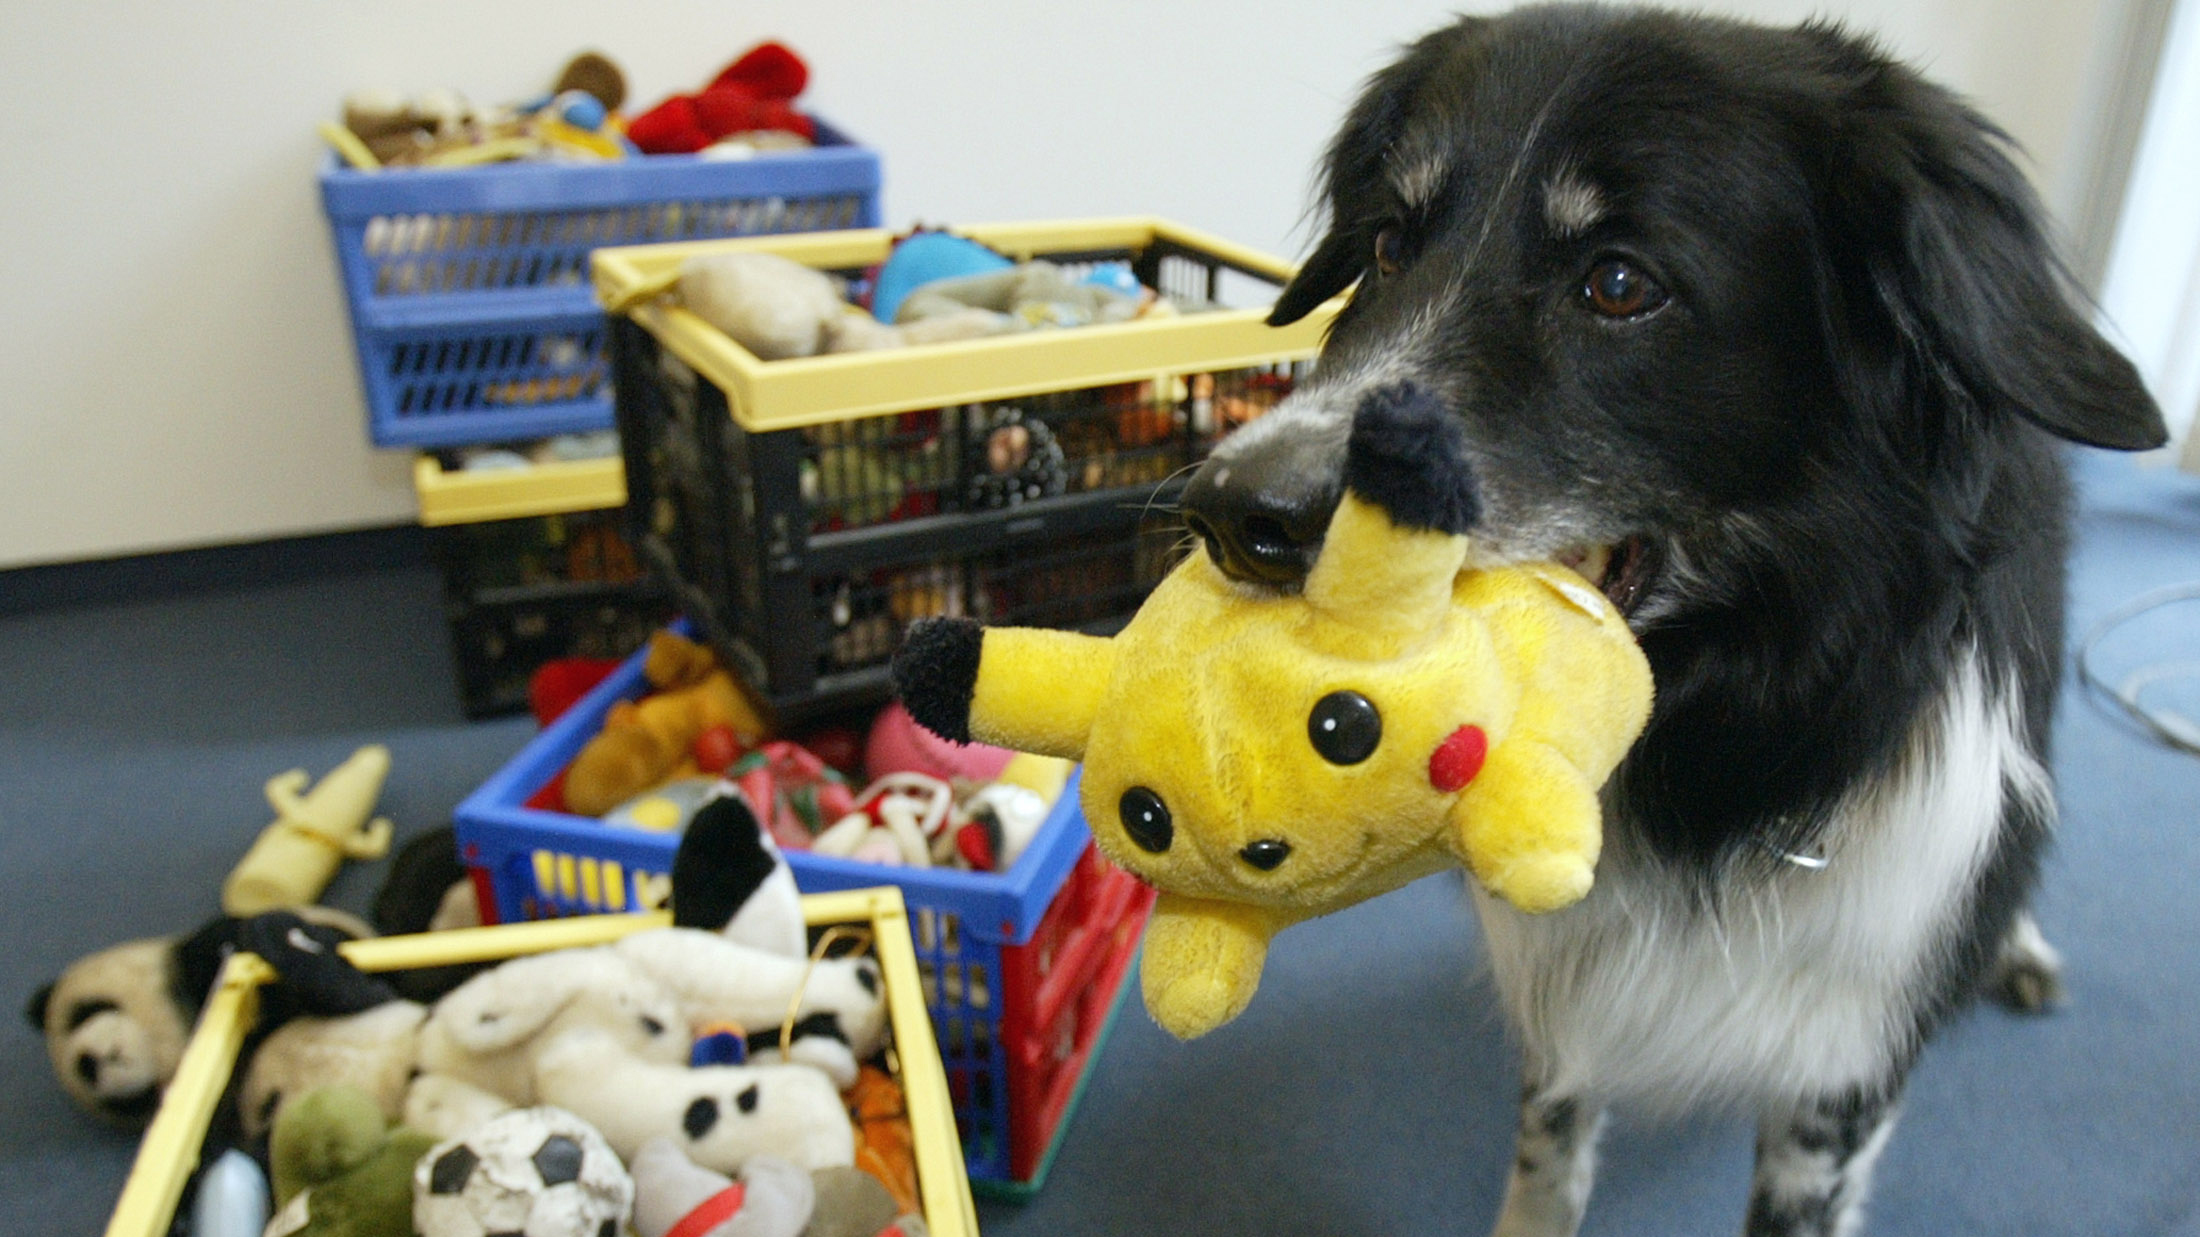 Border collie Rico, who can fetch at least 200 objects by name retrieves a pokemon cuddly in Berlin June 10, 2004. The clever dog can figure out which objects his master wants even if he has never heard the word before. Rico may be living proof that dog truly understand human language, German scientists reported on Thursday. REUTER/Manuela Hartling ATTENTION EDITORS - PICTURE EMBARGOED FOR PUBLICATION AND ONLINE USE UNTIL 18.00 GMT ON JUNE 10, 2004 - RTR43NB